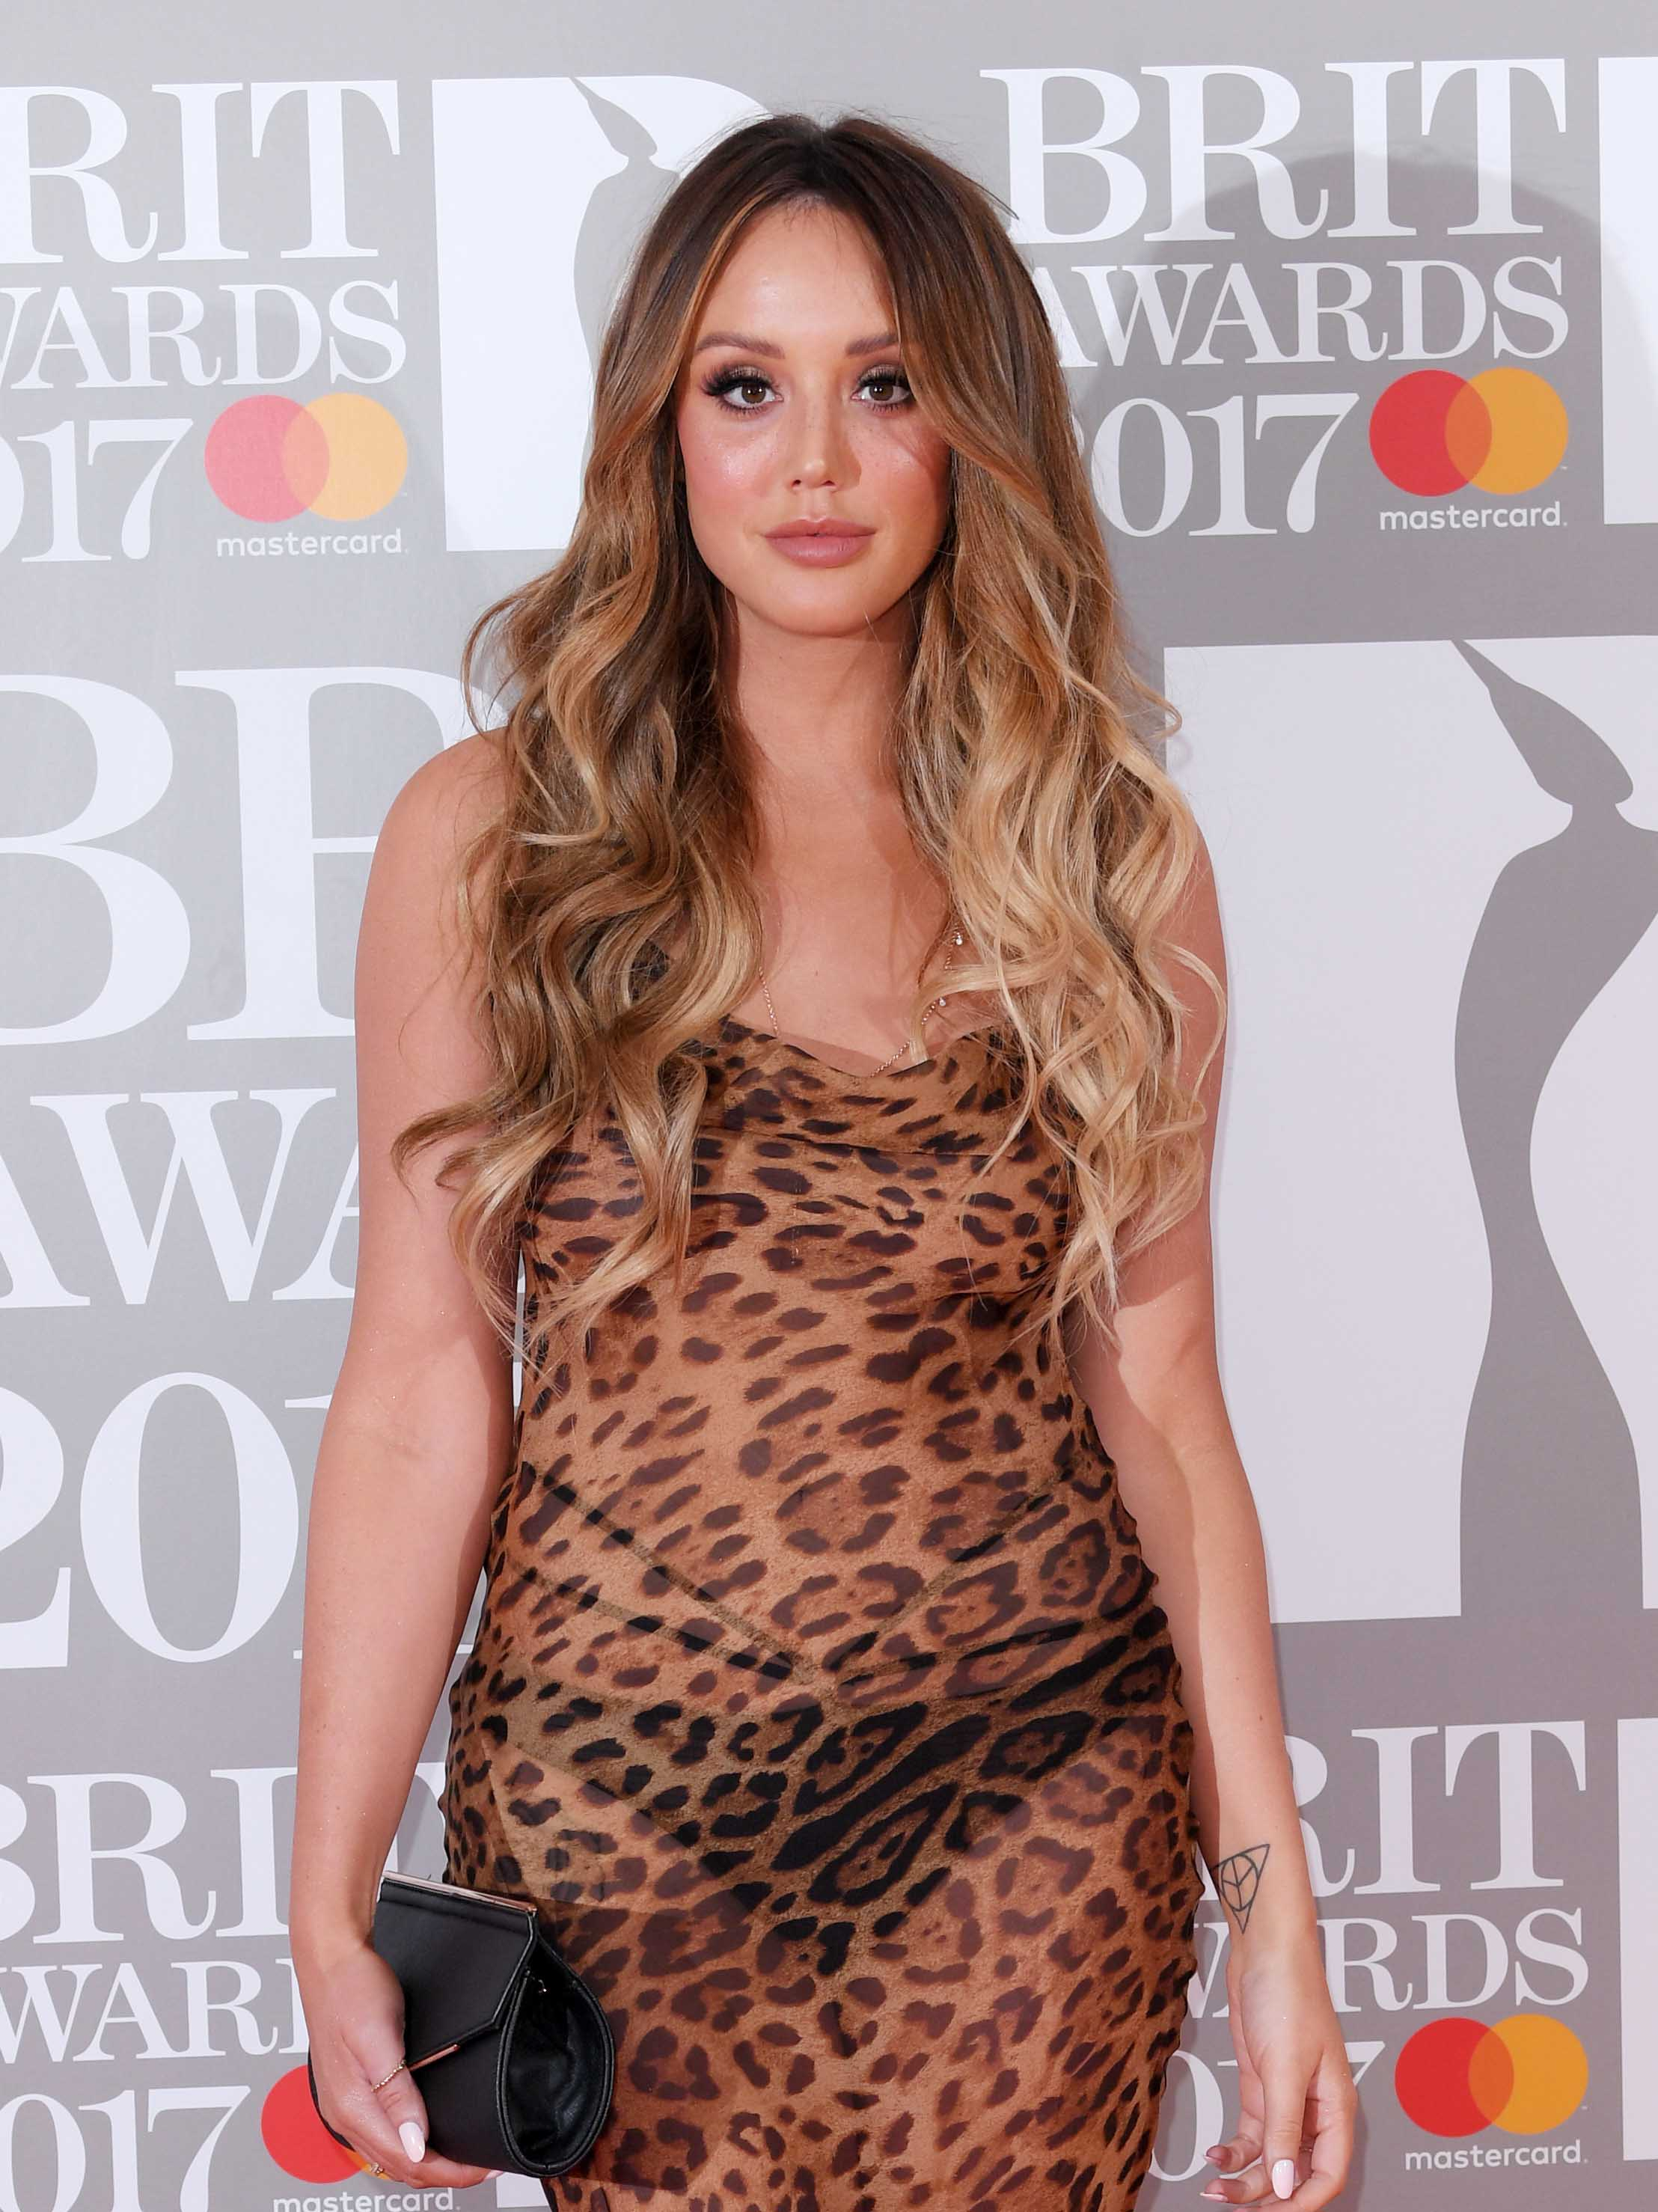 'Is she pregnant?!' Charlotte Crosby fans speculate over THIS illusion